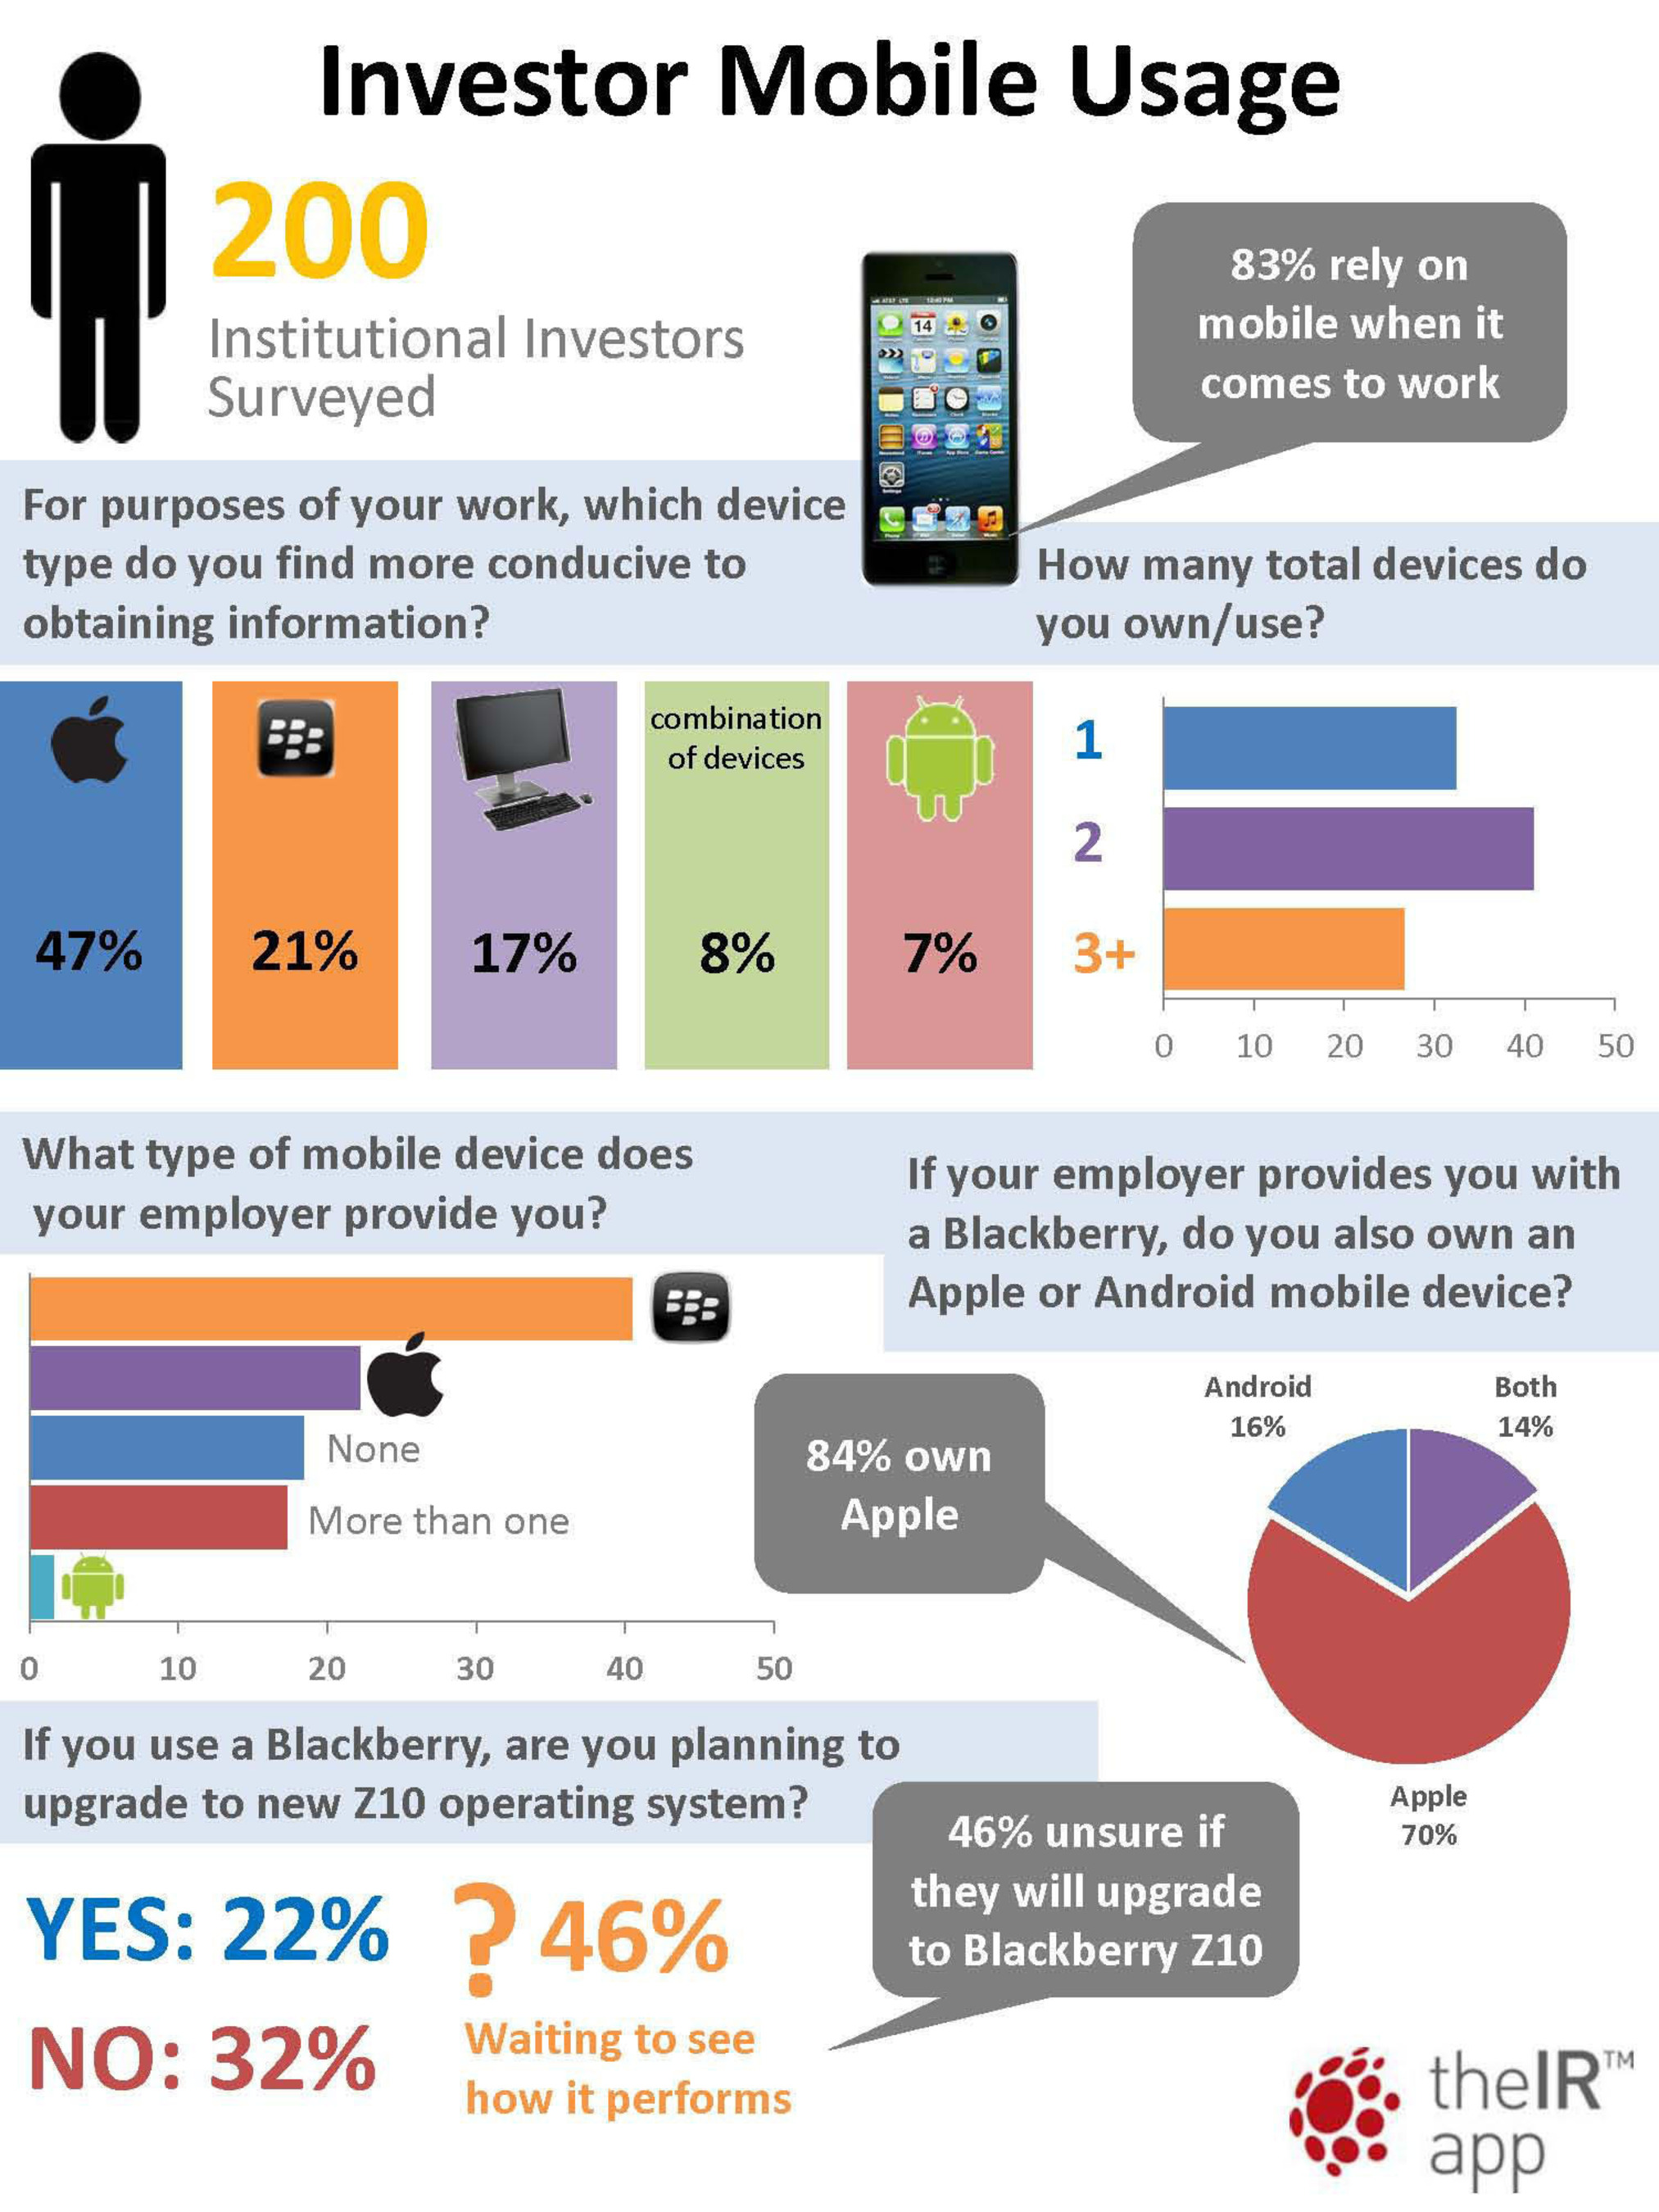 Institutional Investors are now more dependent on the mobile device for conducting their work than on desktop ...